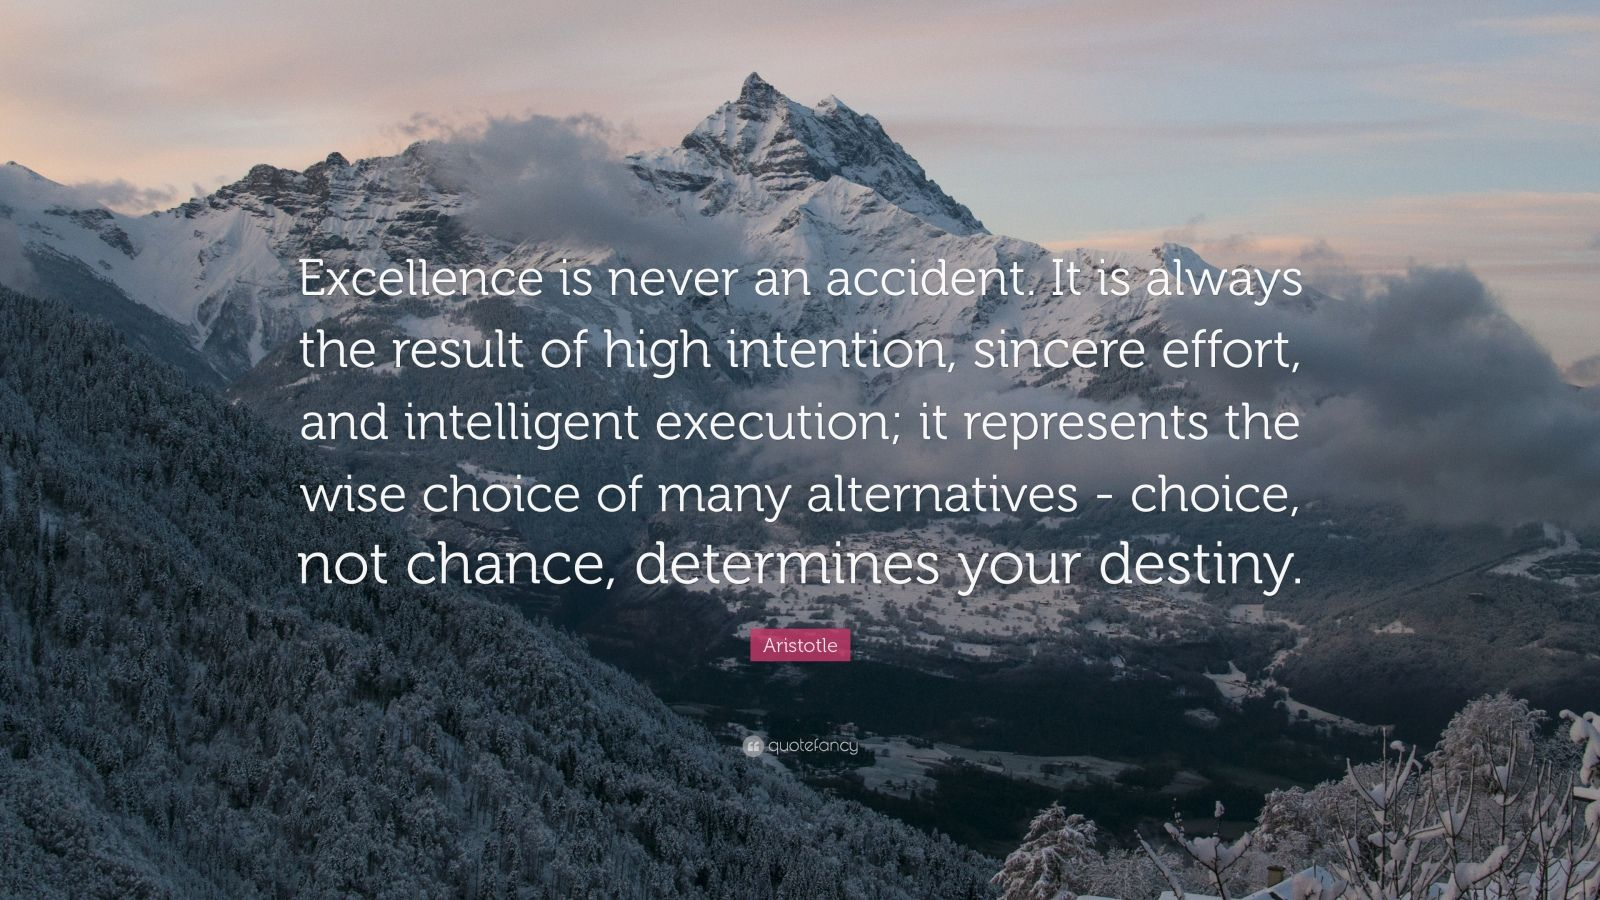 """Aristotle Quote: """"Excellence is never an accident. It is always the result of high intention, sincere effort, and intelligent execution; it represents the wise choice of many alternatives - choice, not chance, determines your destiny."""""""